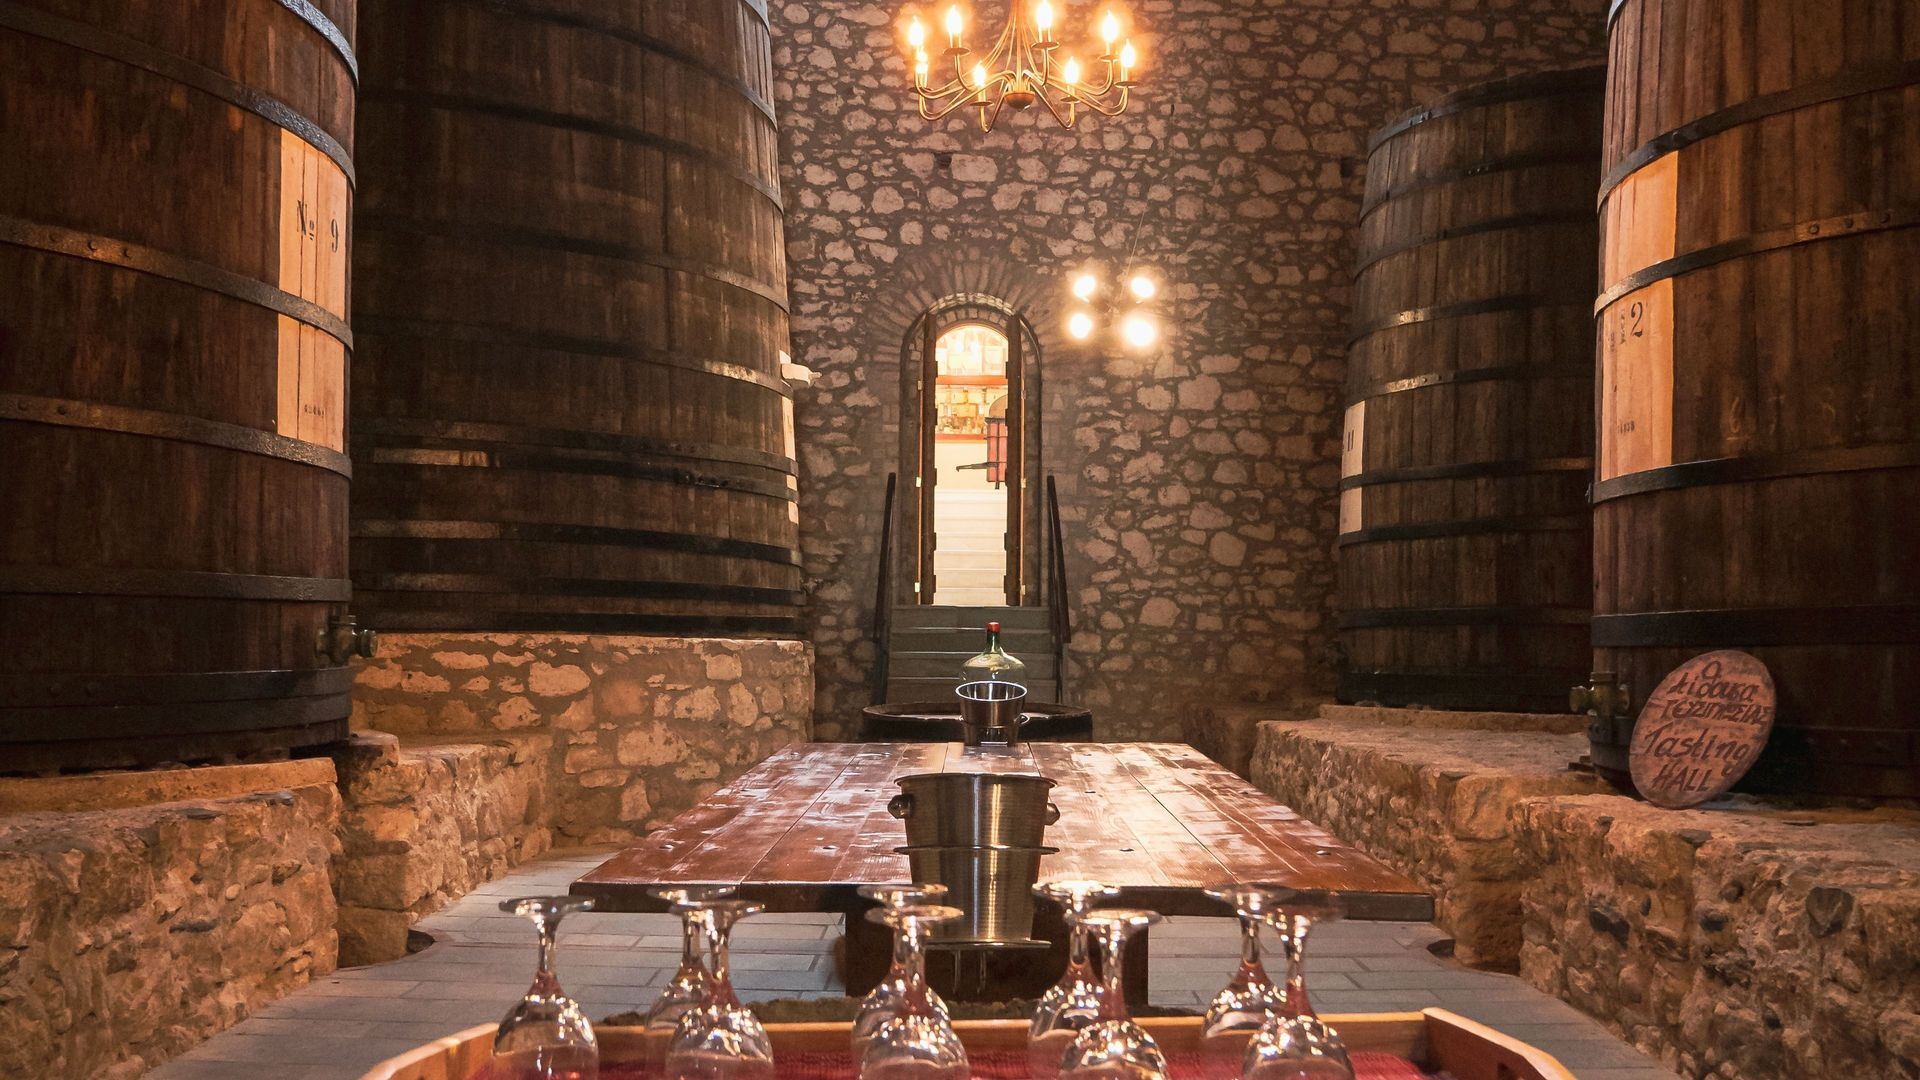 Samos' reputation for fine wine goes back to antiquity